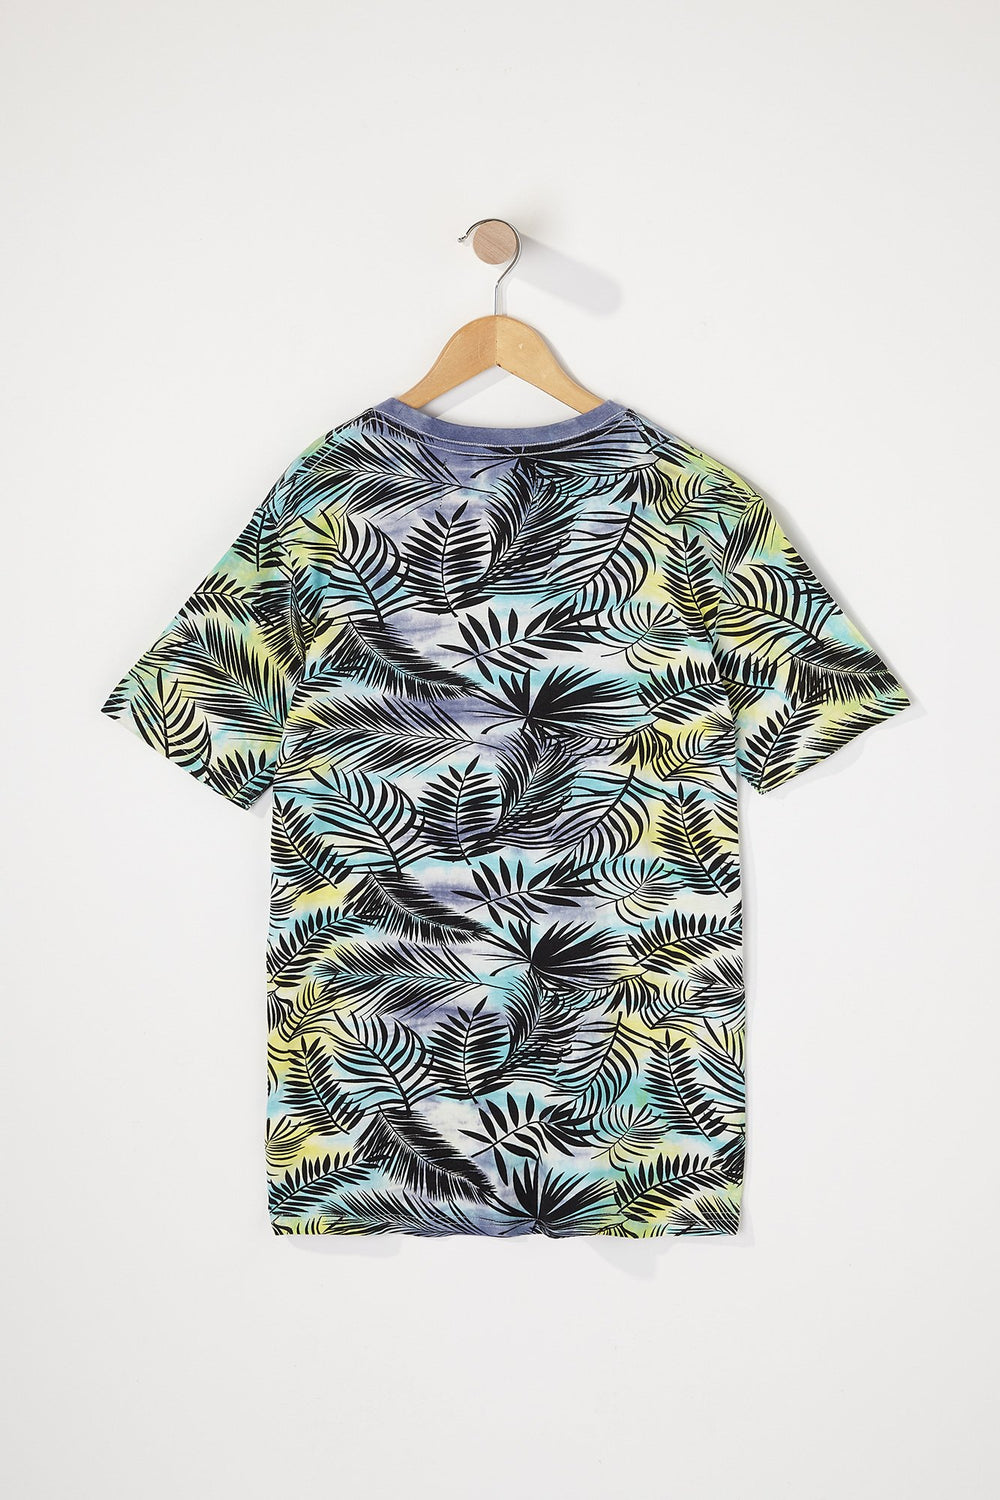 West49 Boys Tie-Dye Palm Tree T-Shirt Multi